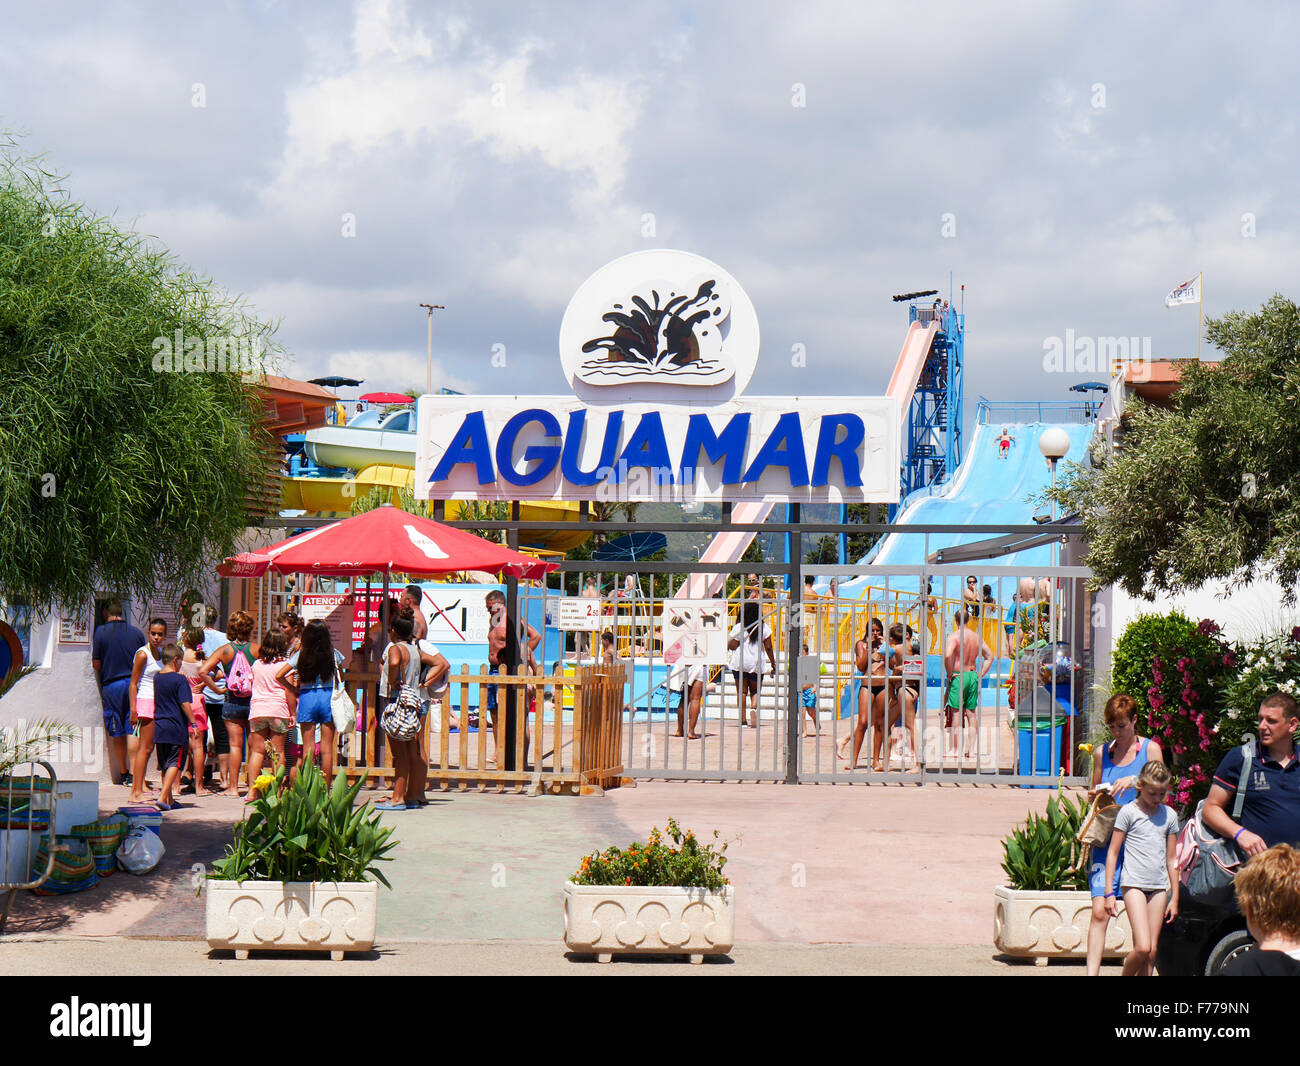 Entrance to Aguamar Water Park, Platja d'en Bossa, Ibiza Spain Stock Photo